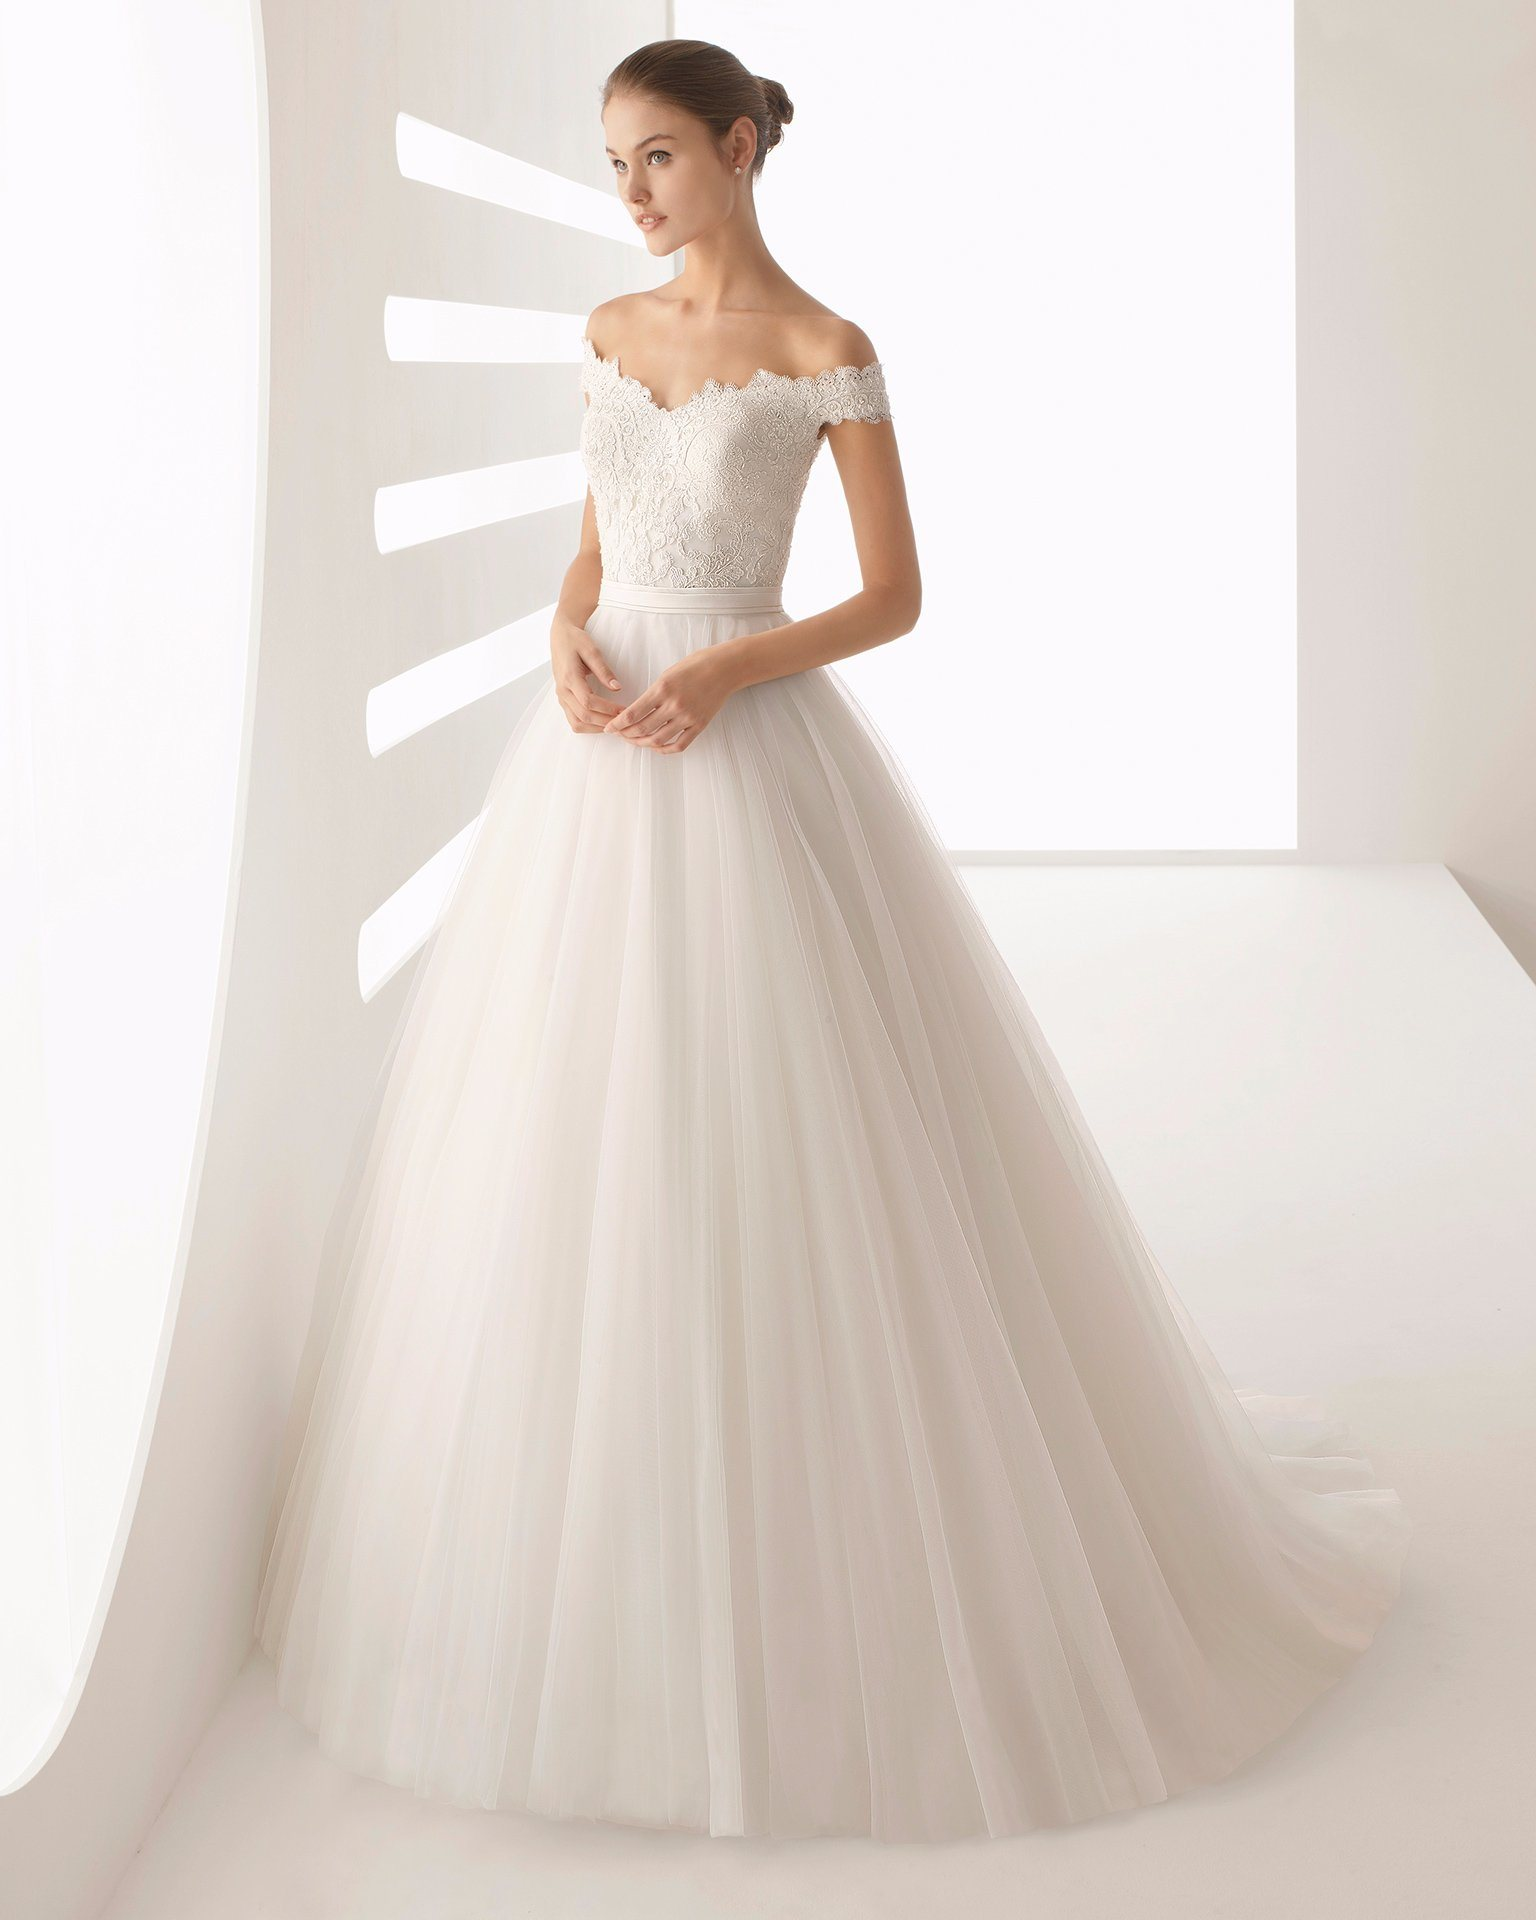 Wedding Gown Preservation Process Machines: China Newest Beaded Lace Top Tulle Skirt Off Shoulder